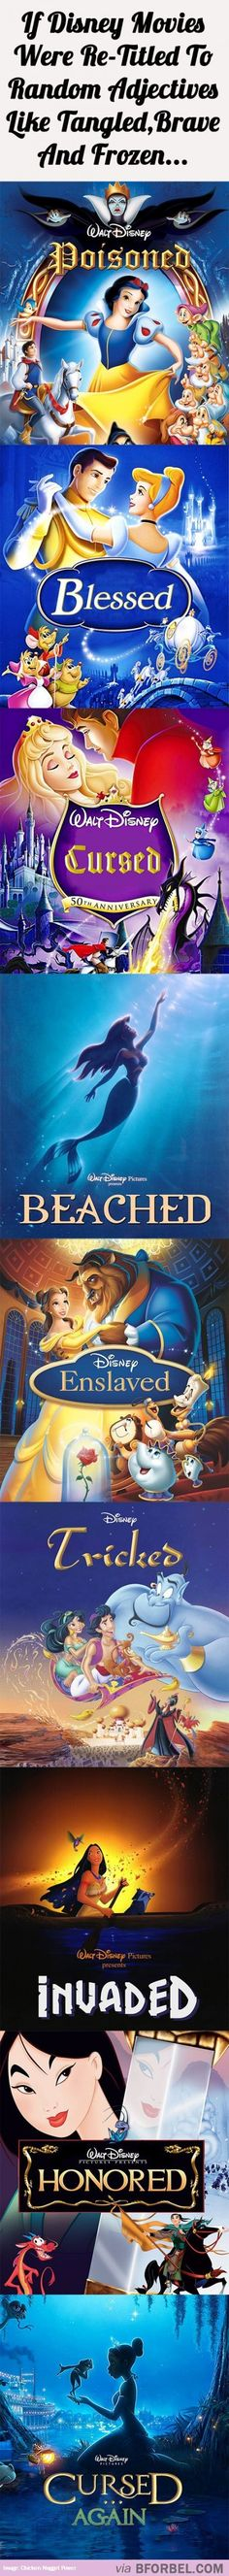 "If Disney Movies Were Retitled To Random Adjectives Like ""Frozen"" And ""Tangled"""